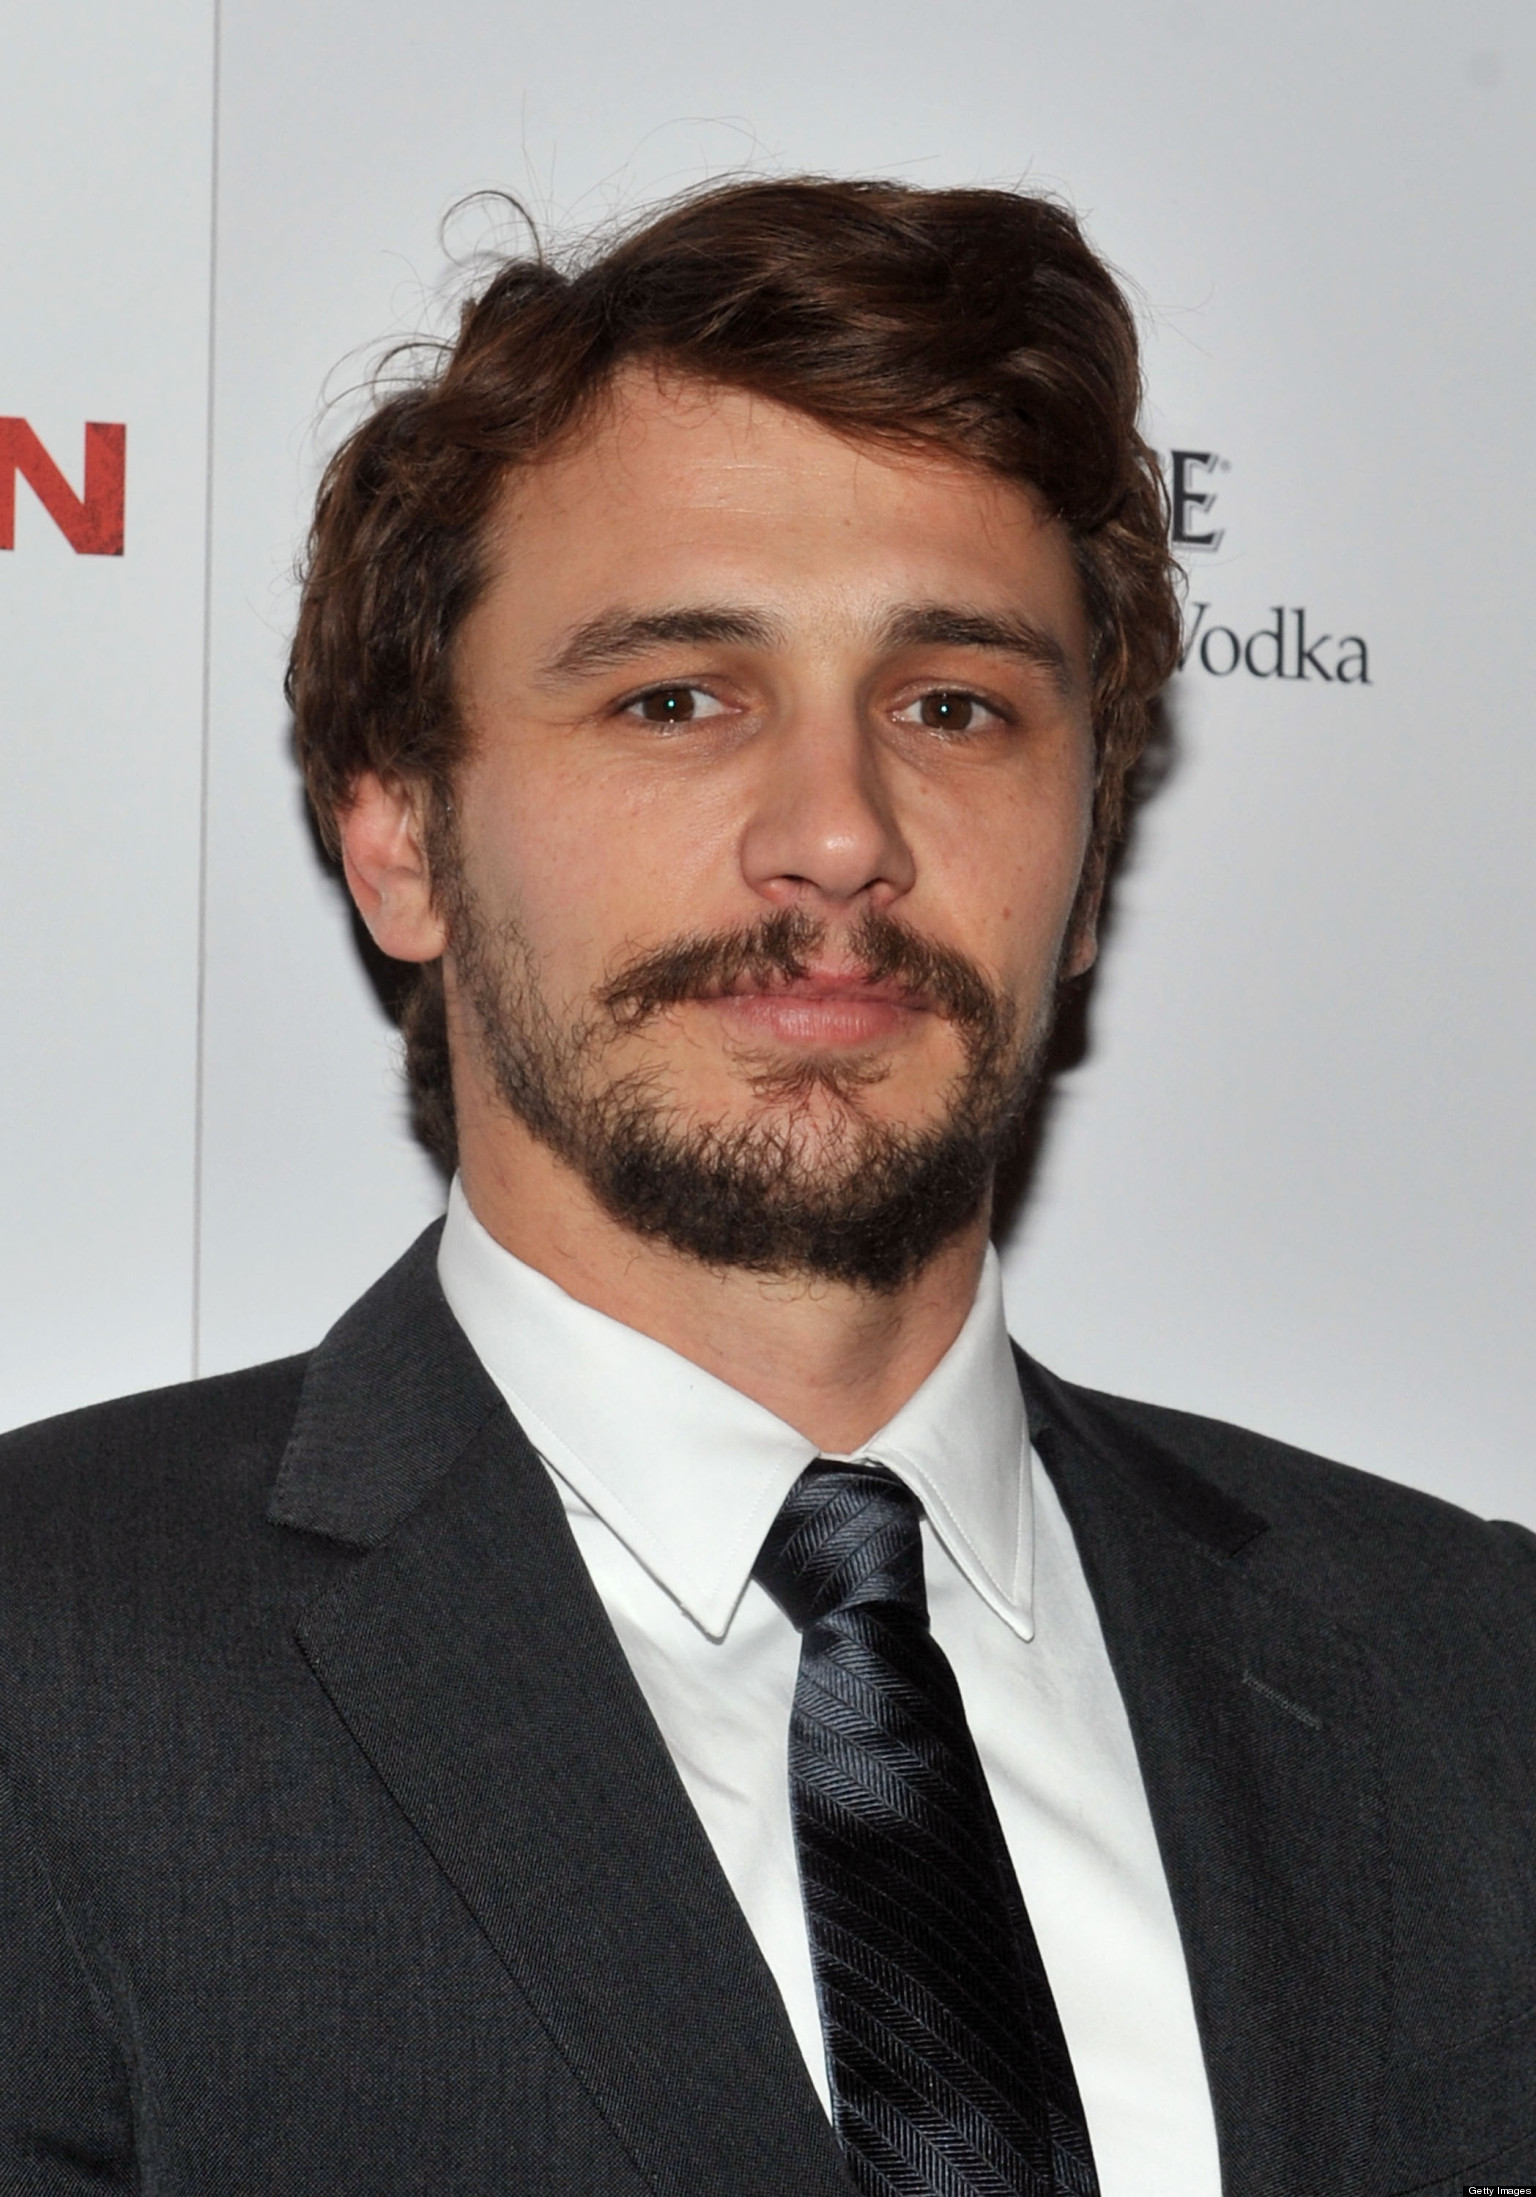 NSFW: Of Course James Franco Celebrated His Birthday With A Dildo Cake